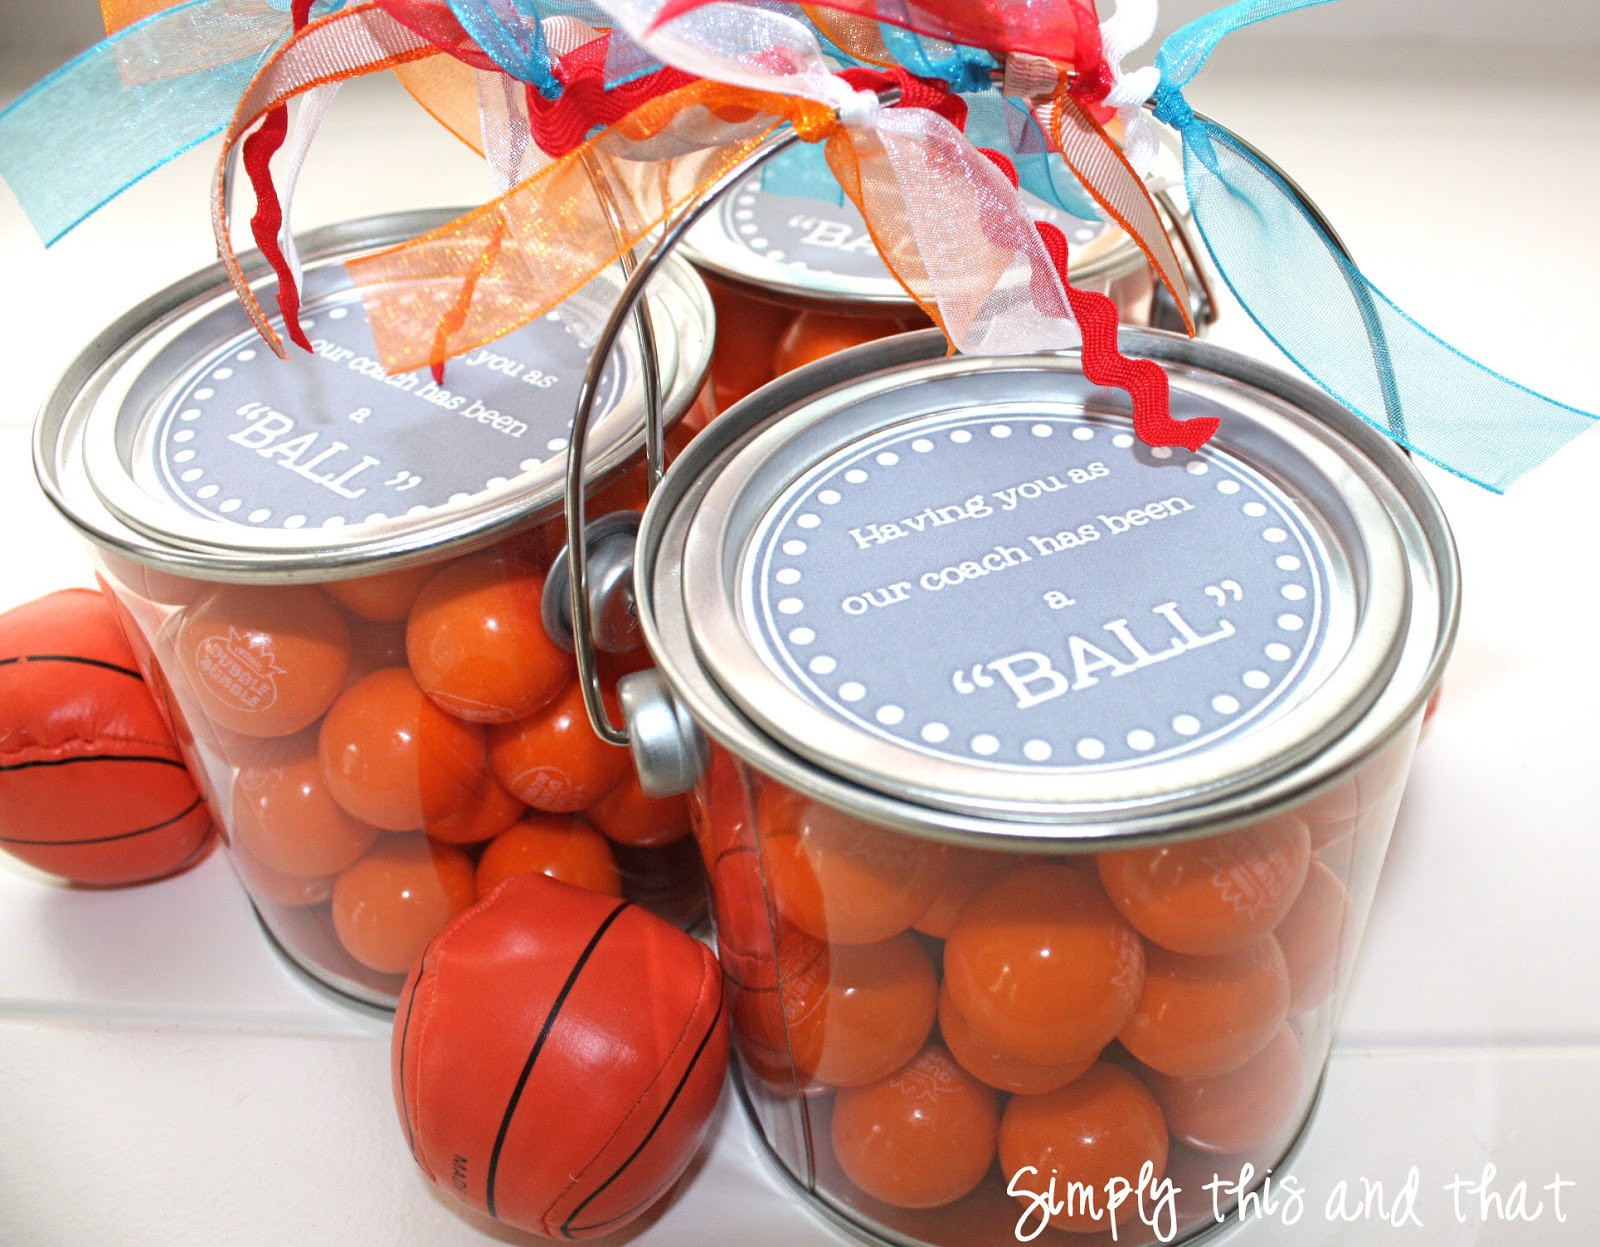 Best ideas about Basketball Coach Gift Ideas . Save or Pin Simply This and that Coach Teacher Gift Now.